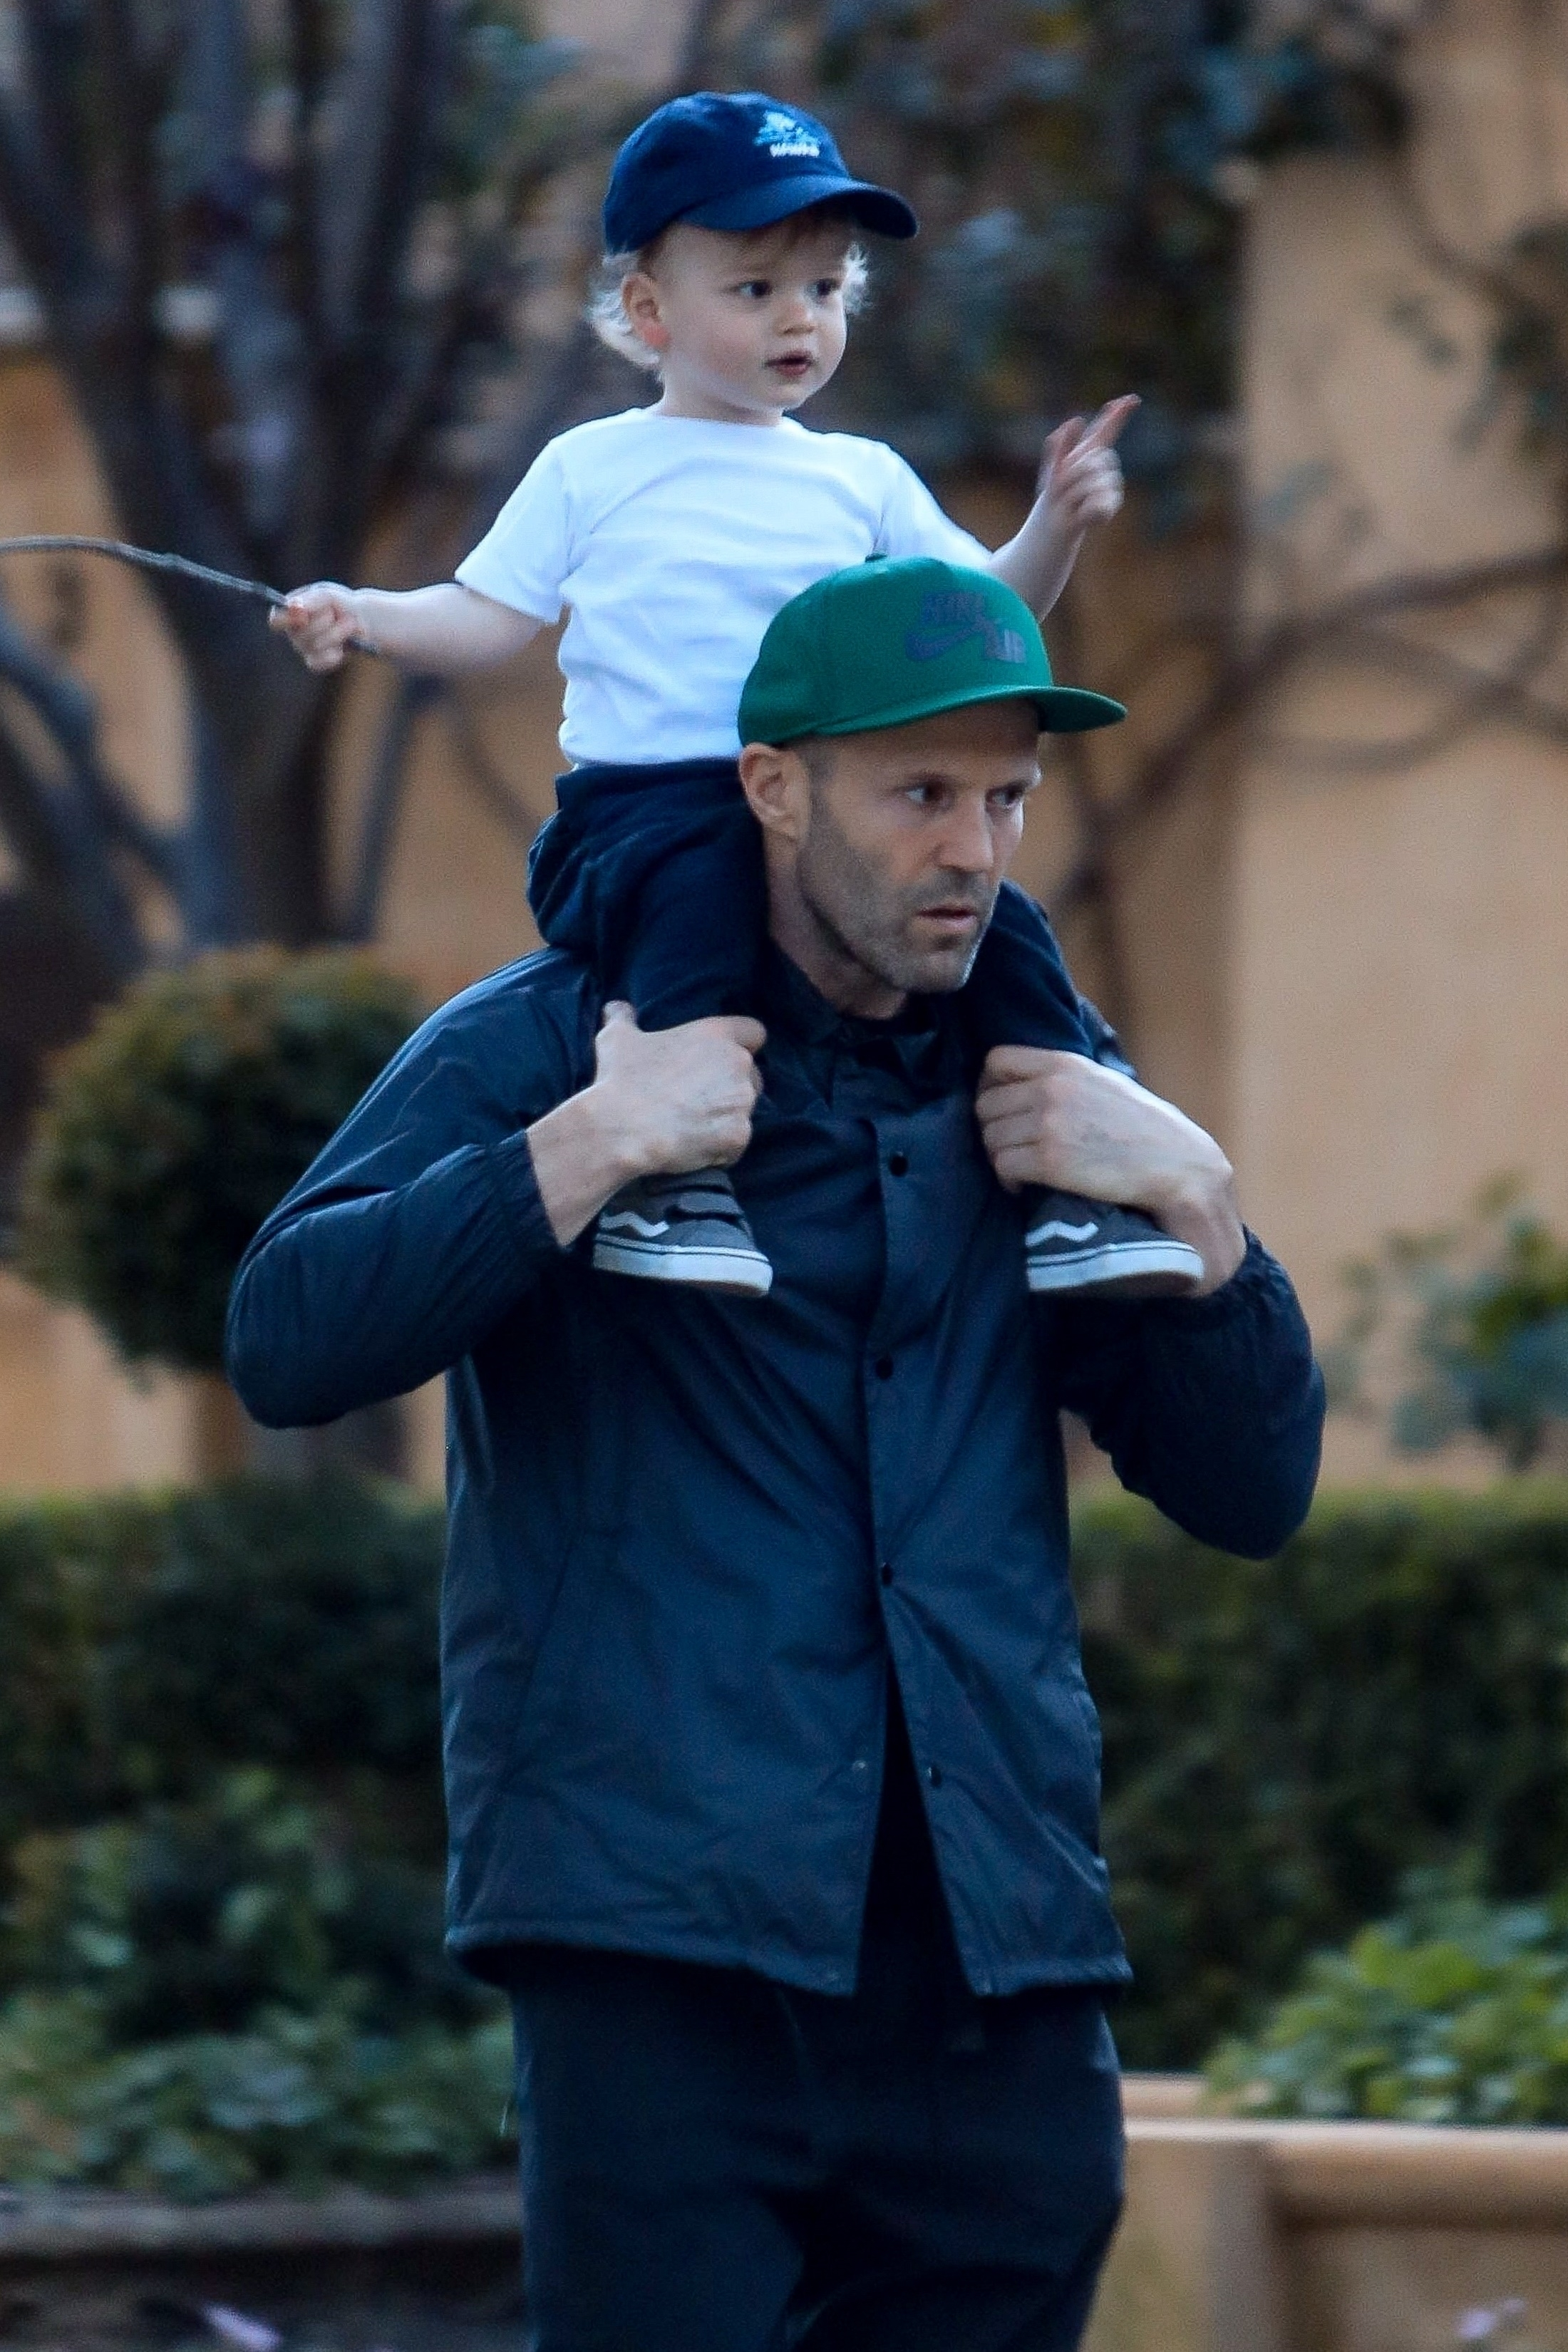 Jason Statham carried his son Jack while taking a walk in the Pacific Palisades section of Los Angeles on March 14, 2019.